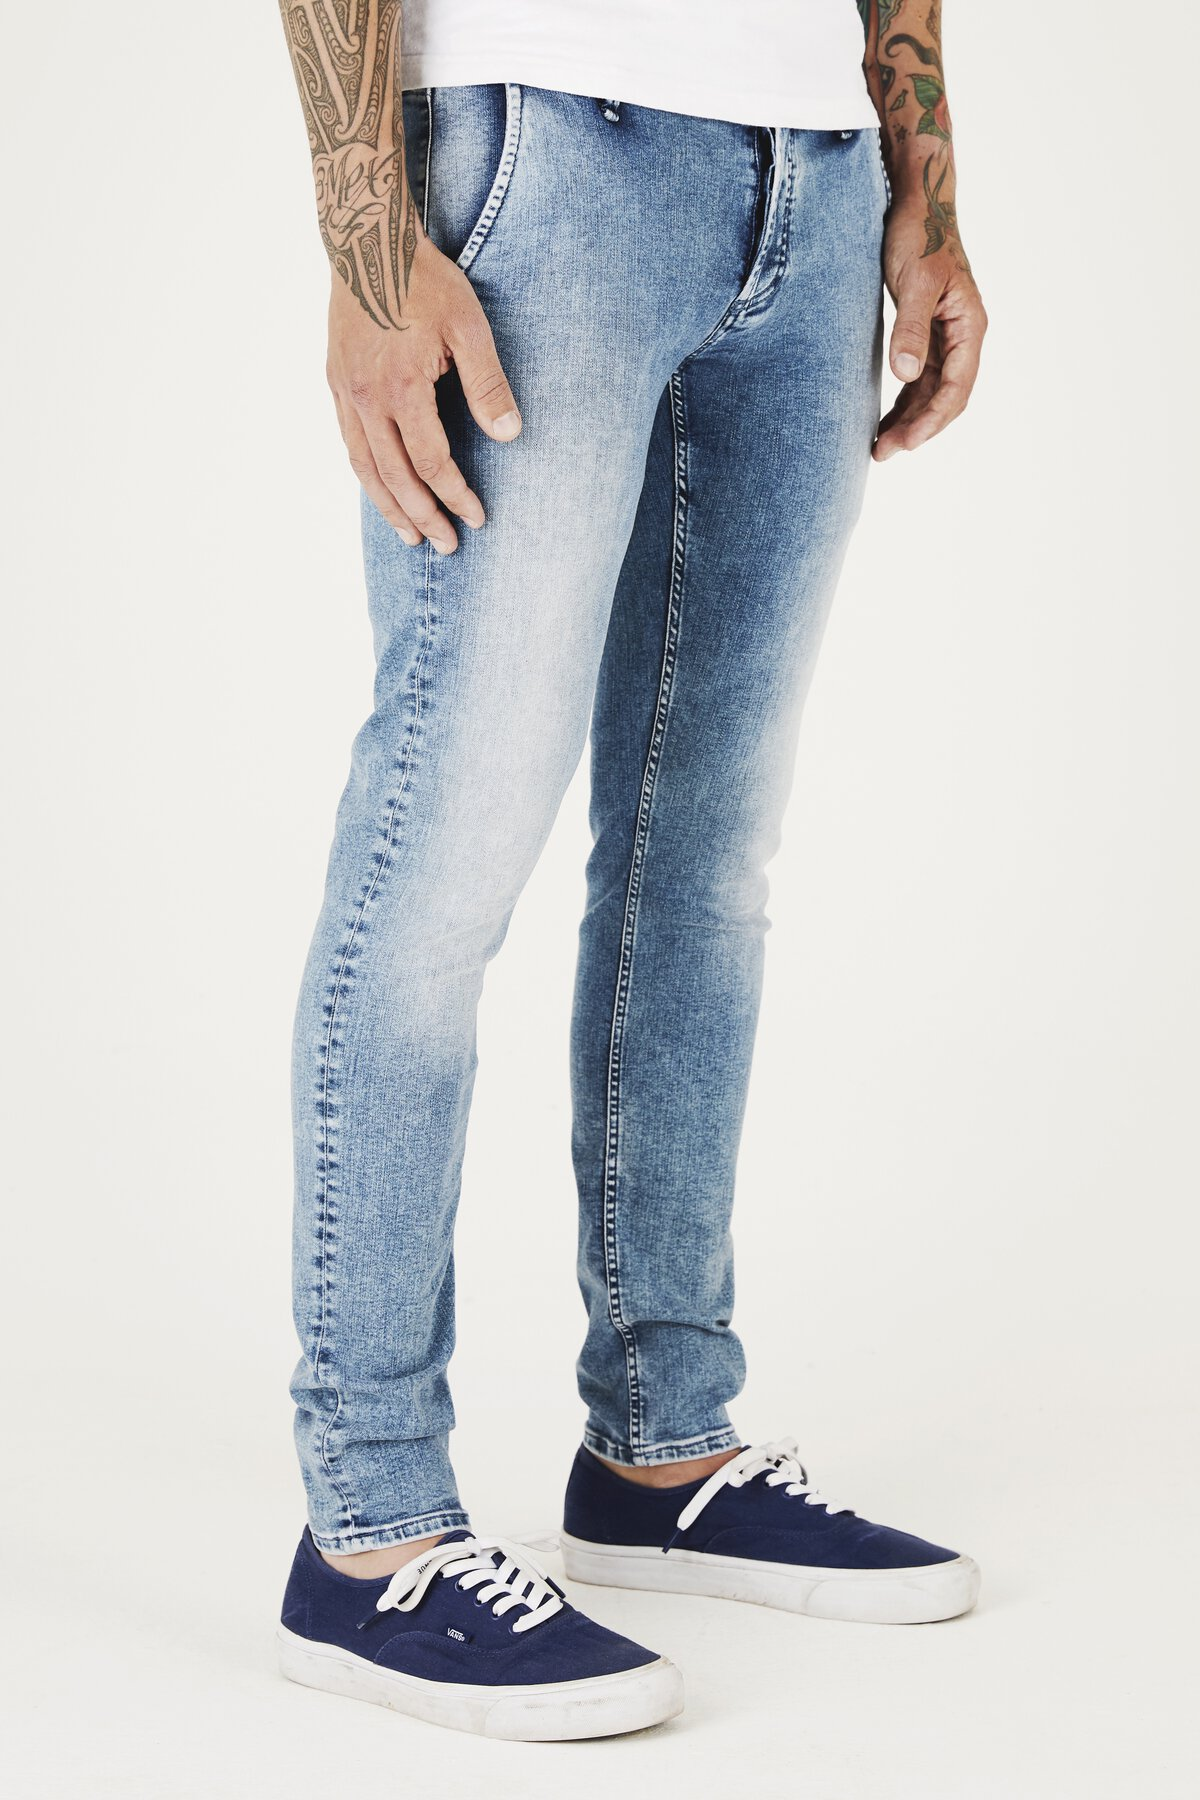 York - Slim Tapered Fit Jeans - Back